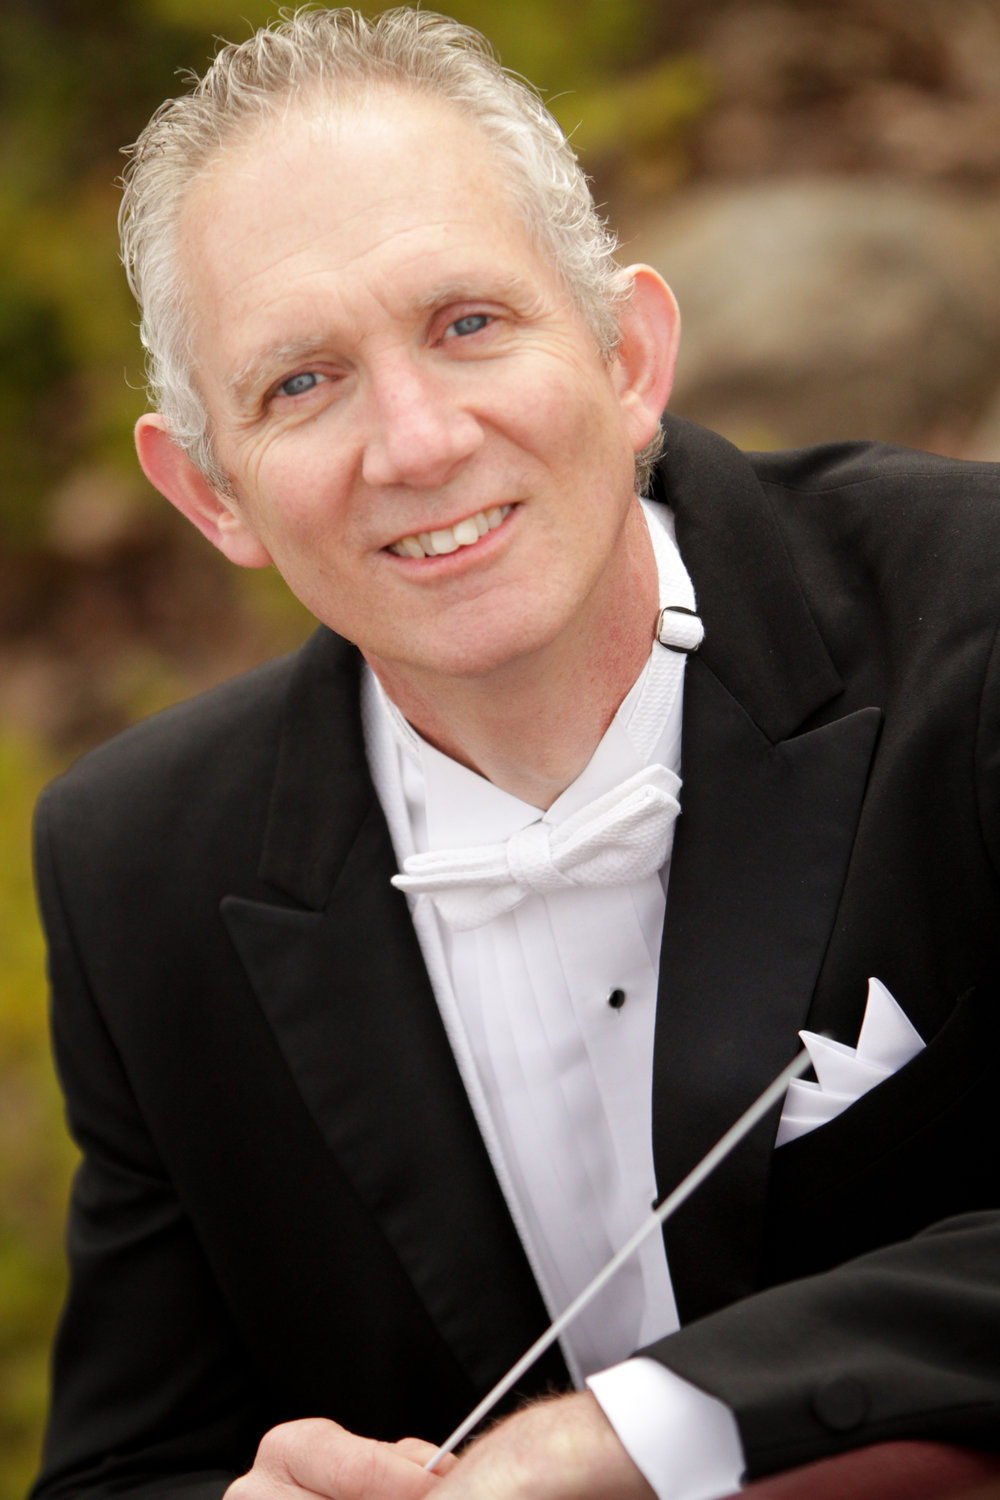 Conductor - Jerry Luckhardt